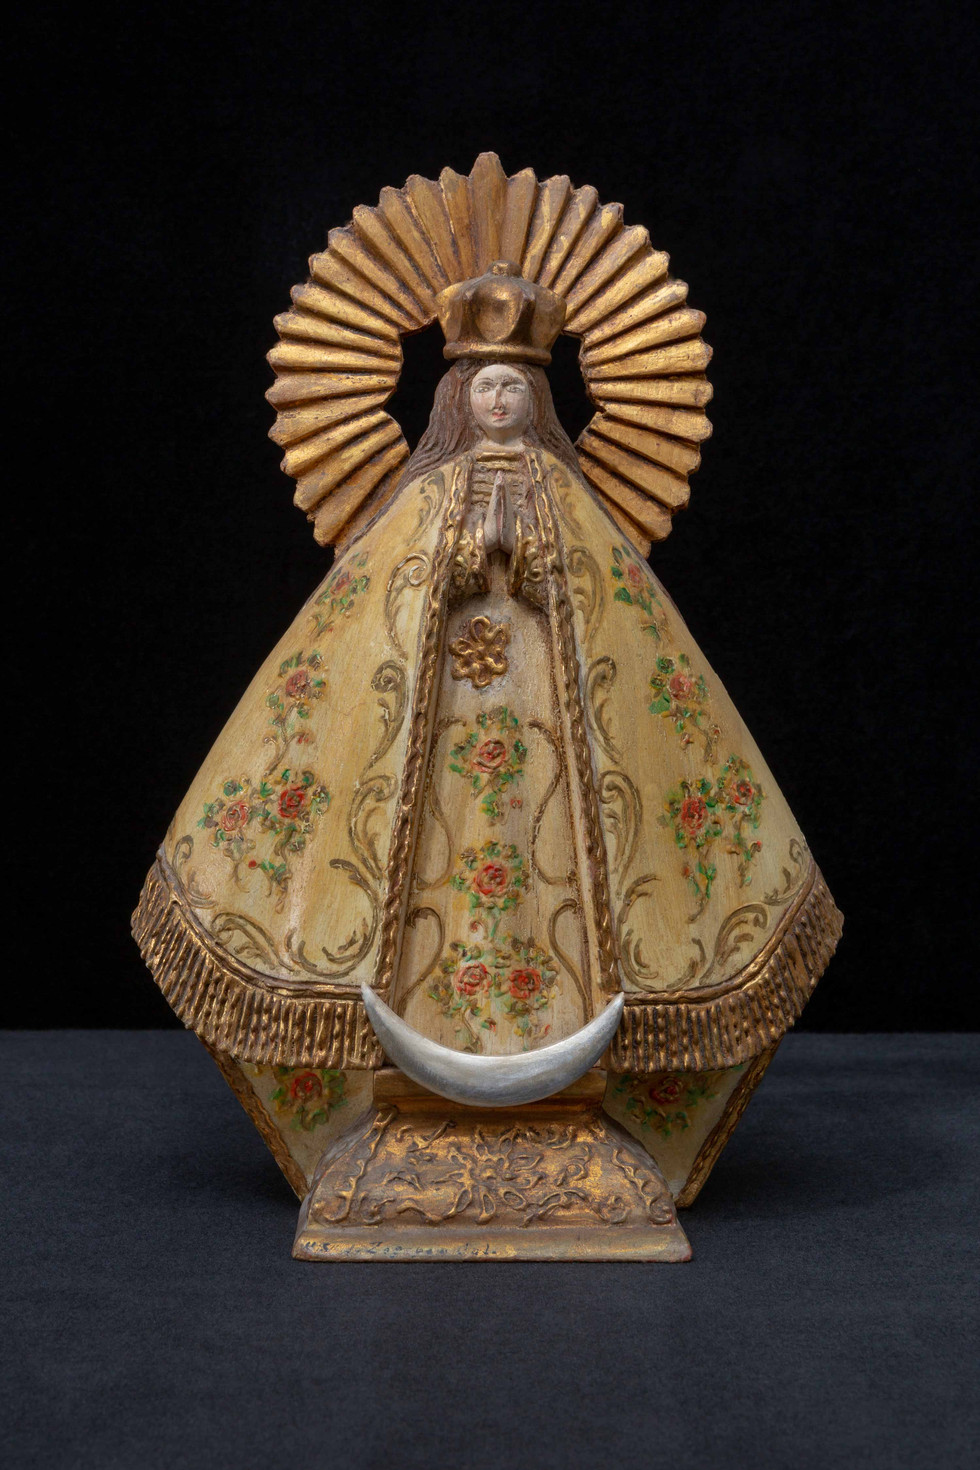 Hand painted wooden Madonna statue from Poland – circa 1970's - a gift from George Jalbert (aka Chenile) to his landmate Assunta Femia - Sister species of Crow.